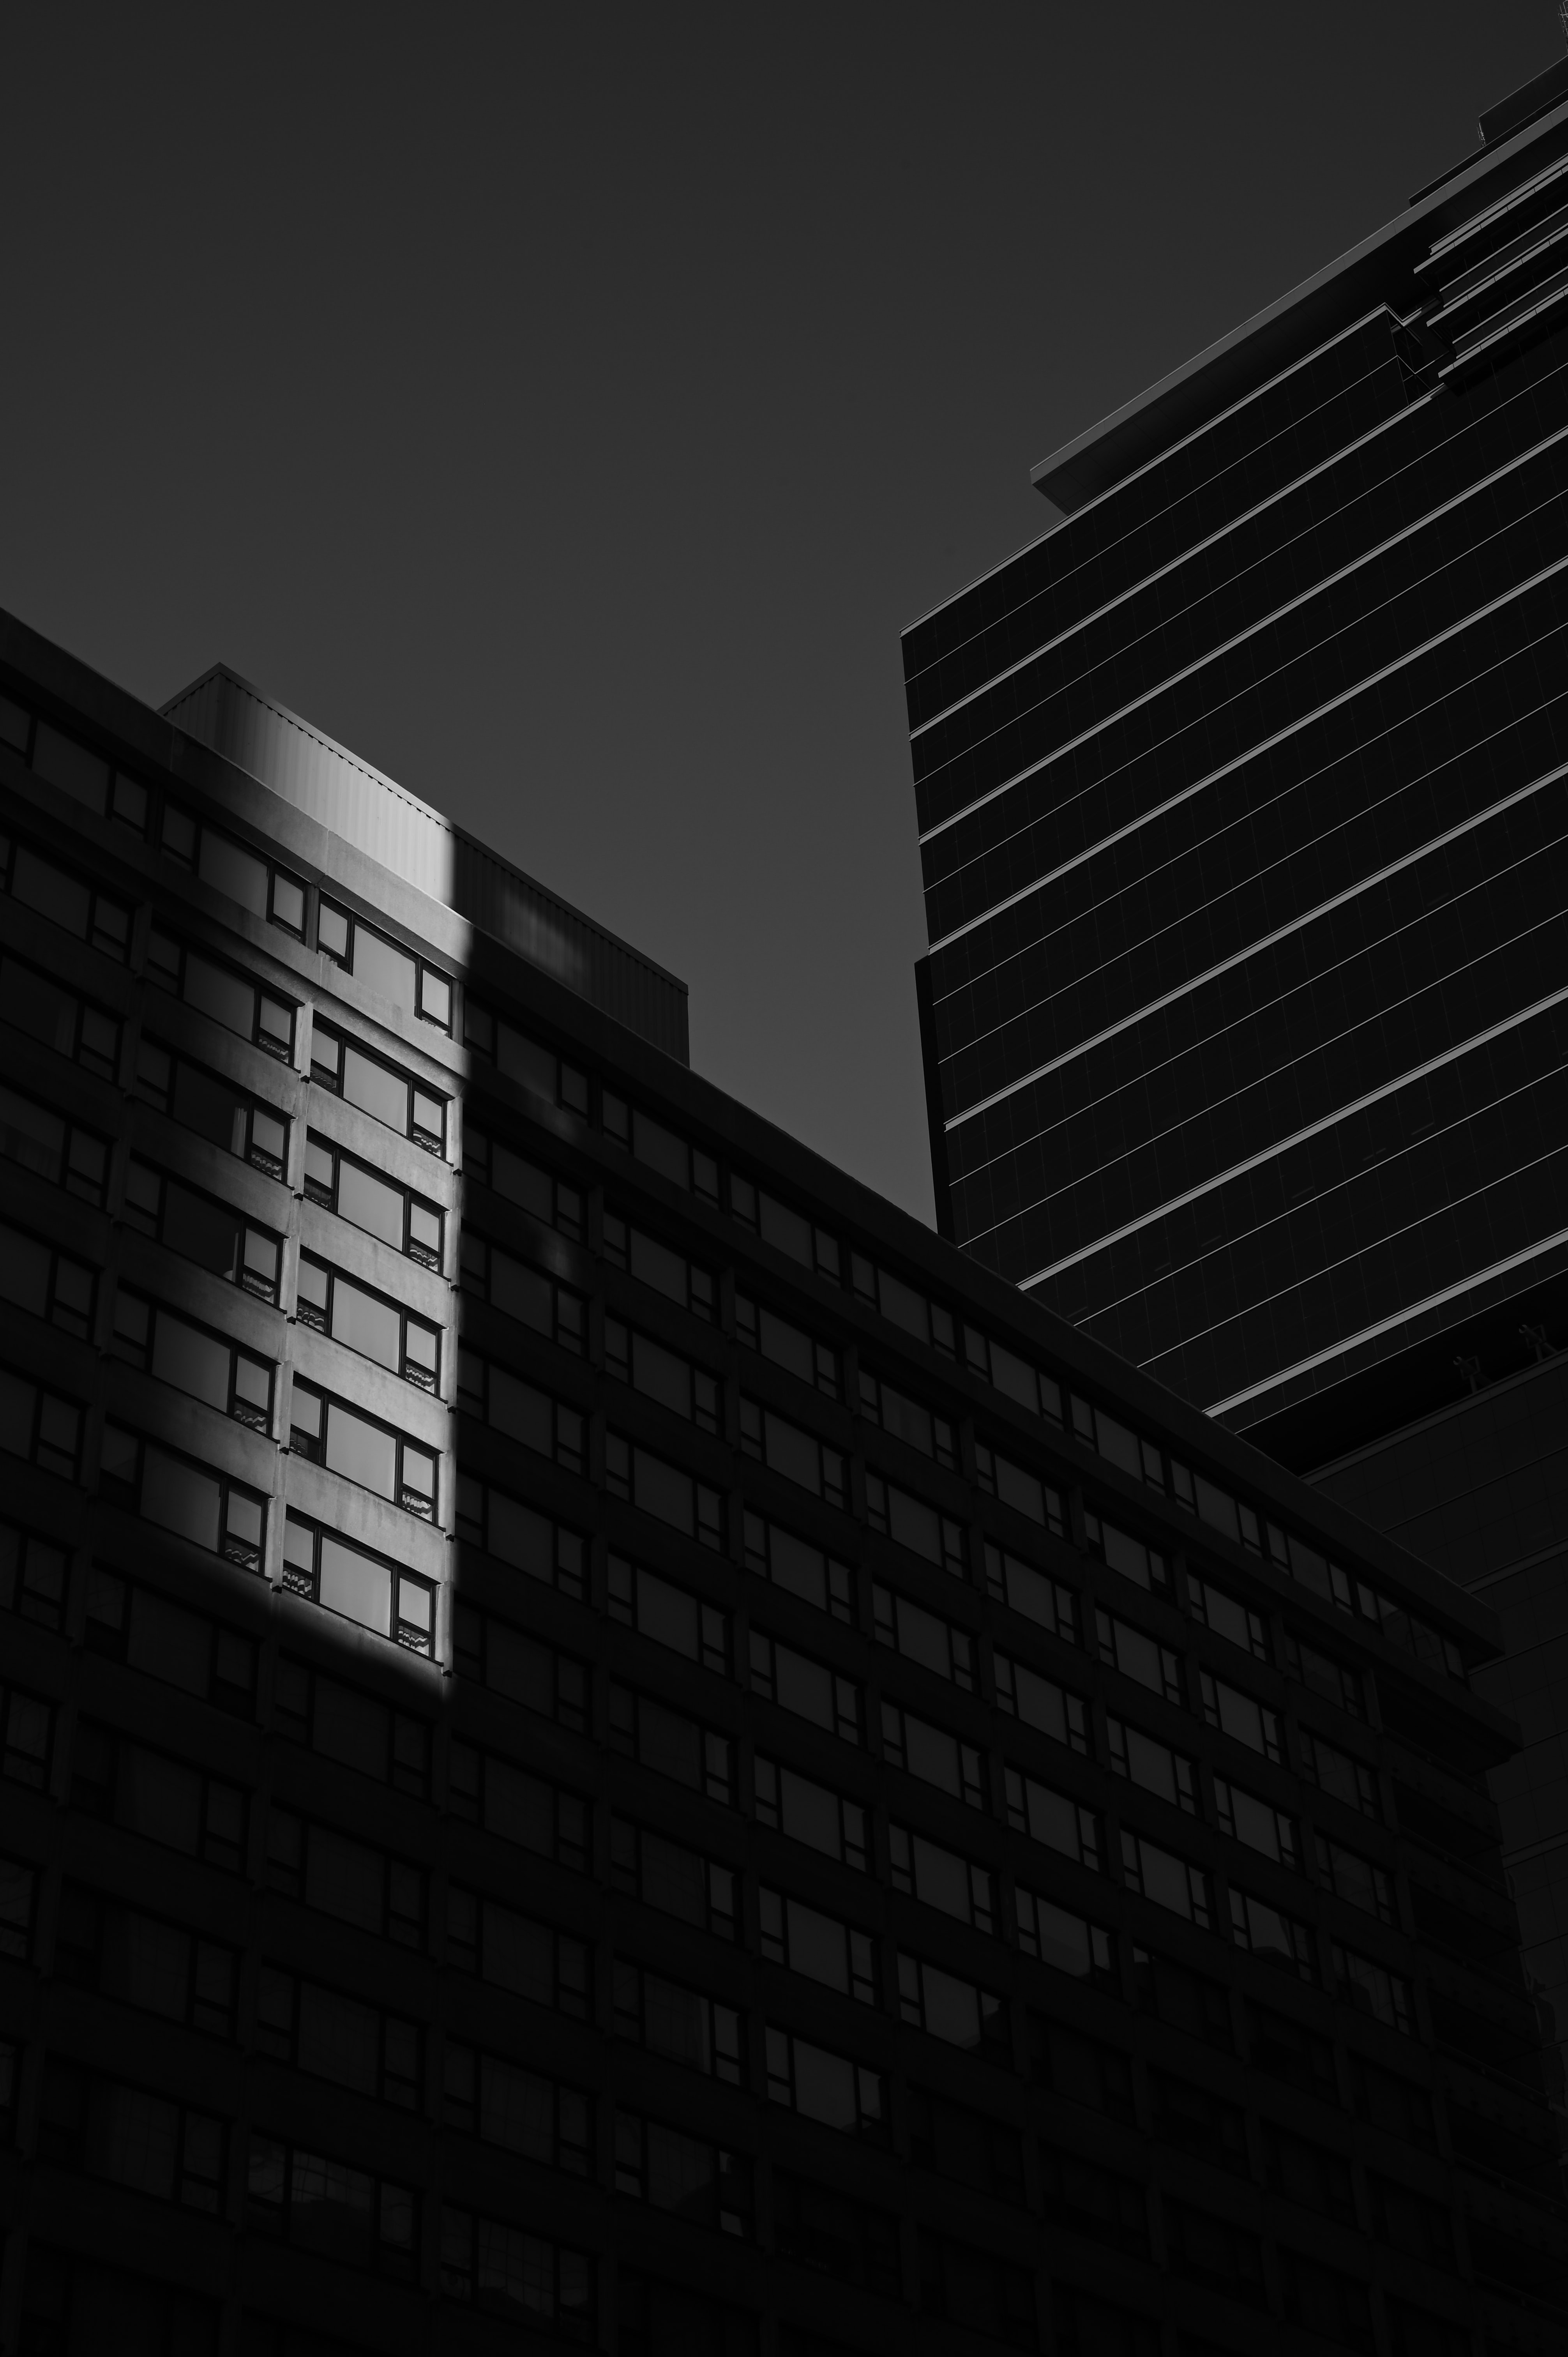 131310 download wallpaper Miscellanea, Miscellaneous, Building, Shadow, Bw, Chb, Architecture screensavers and pictures for free